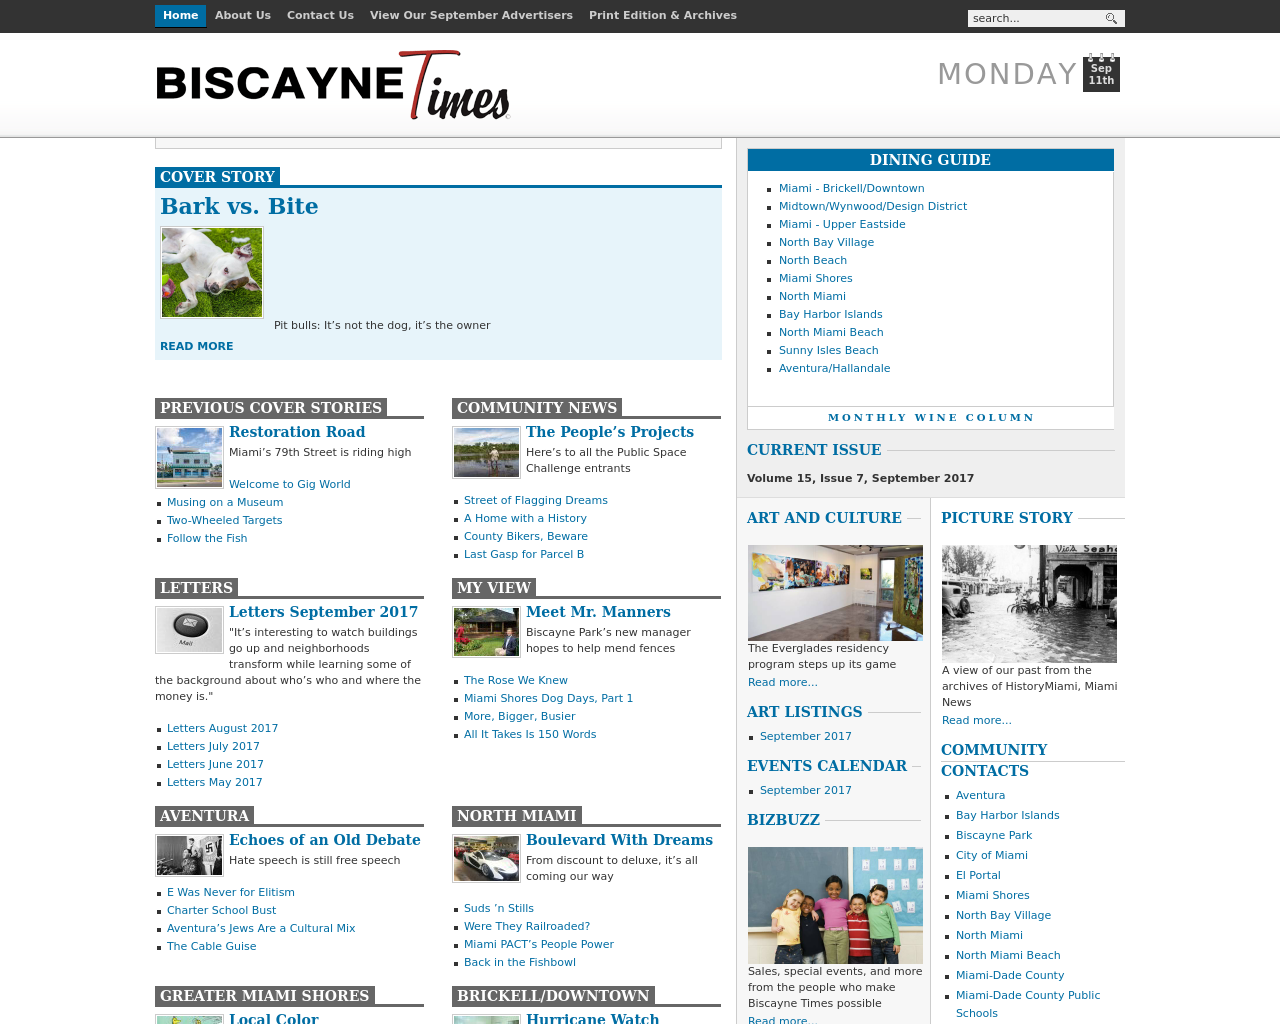 BISCAYNE-Times-Advertising-Reviews-Pricing